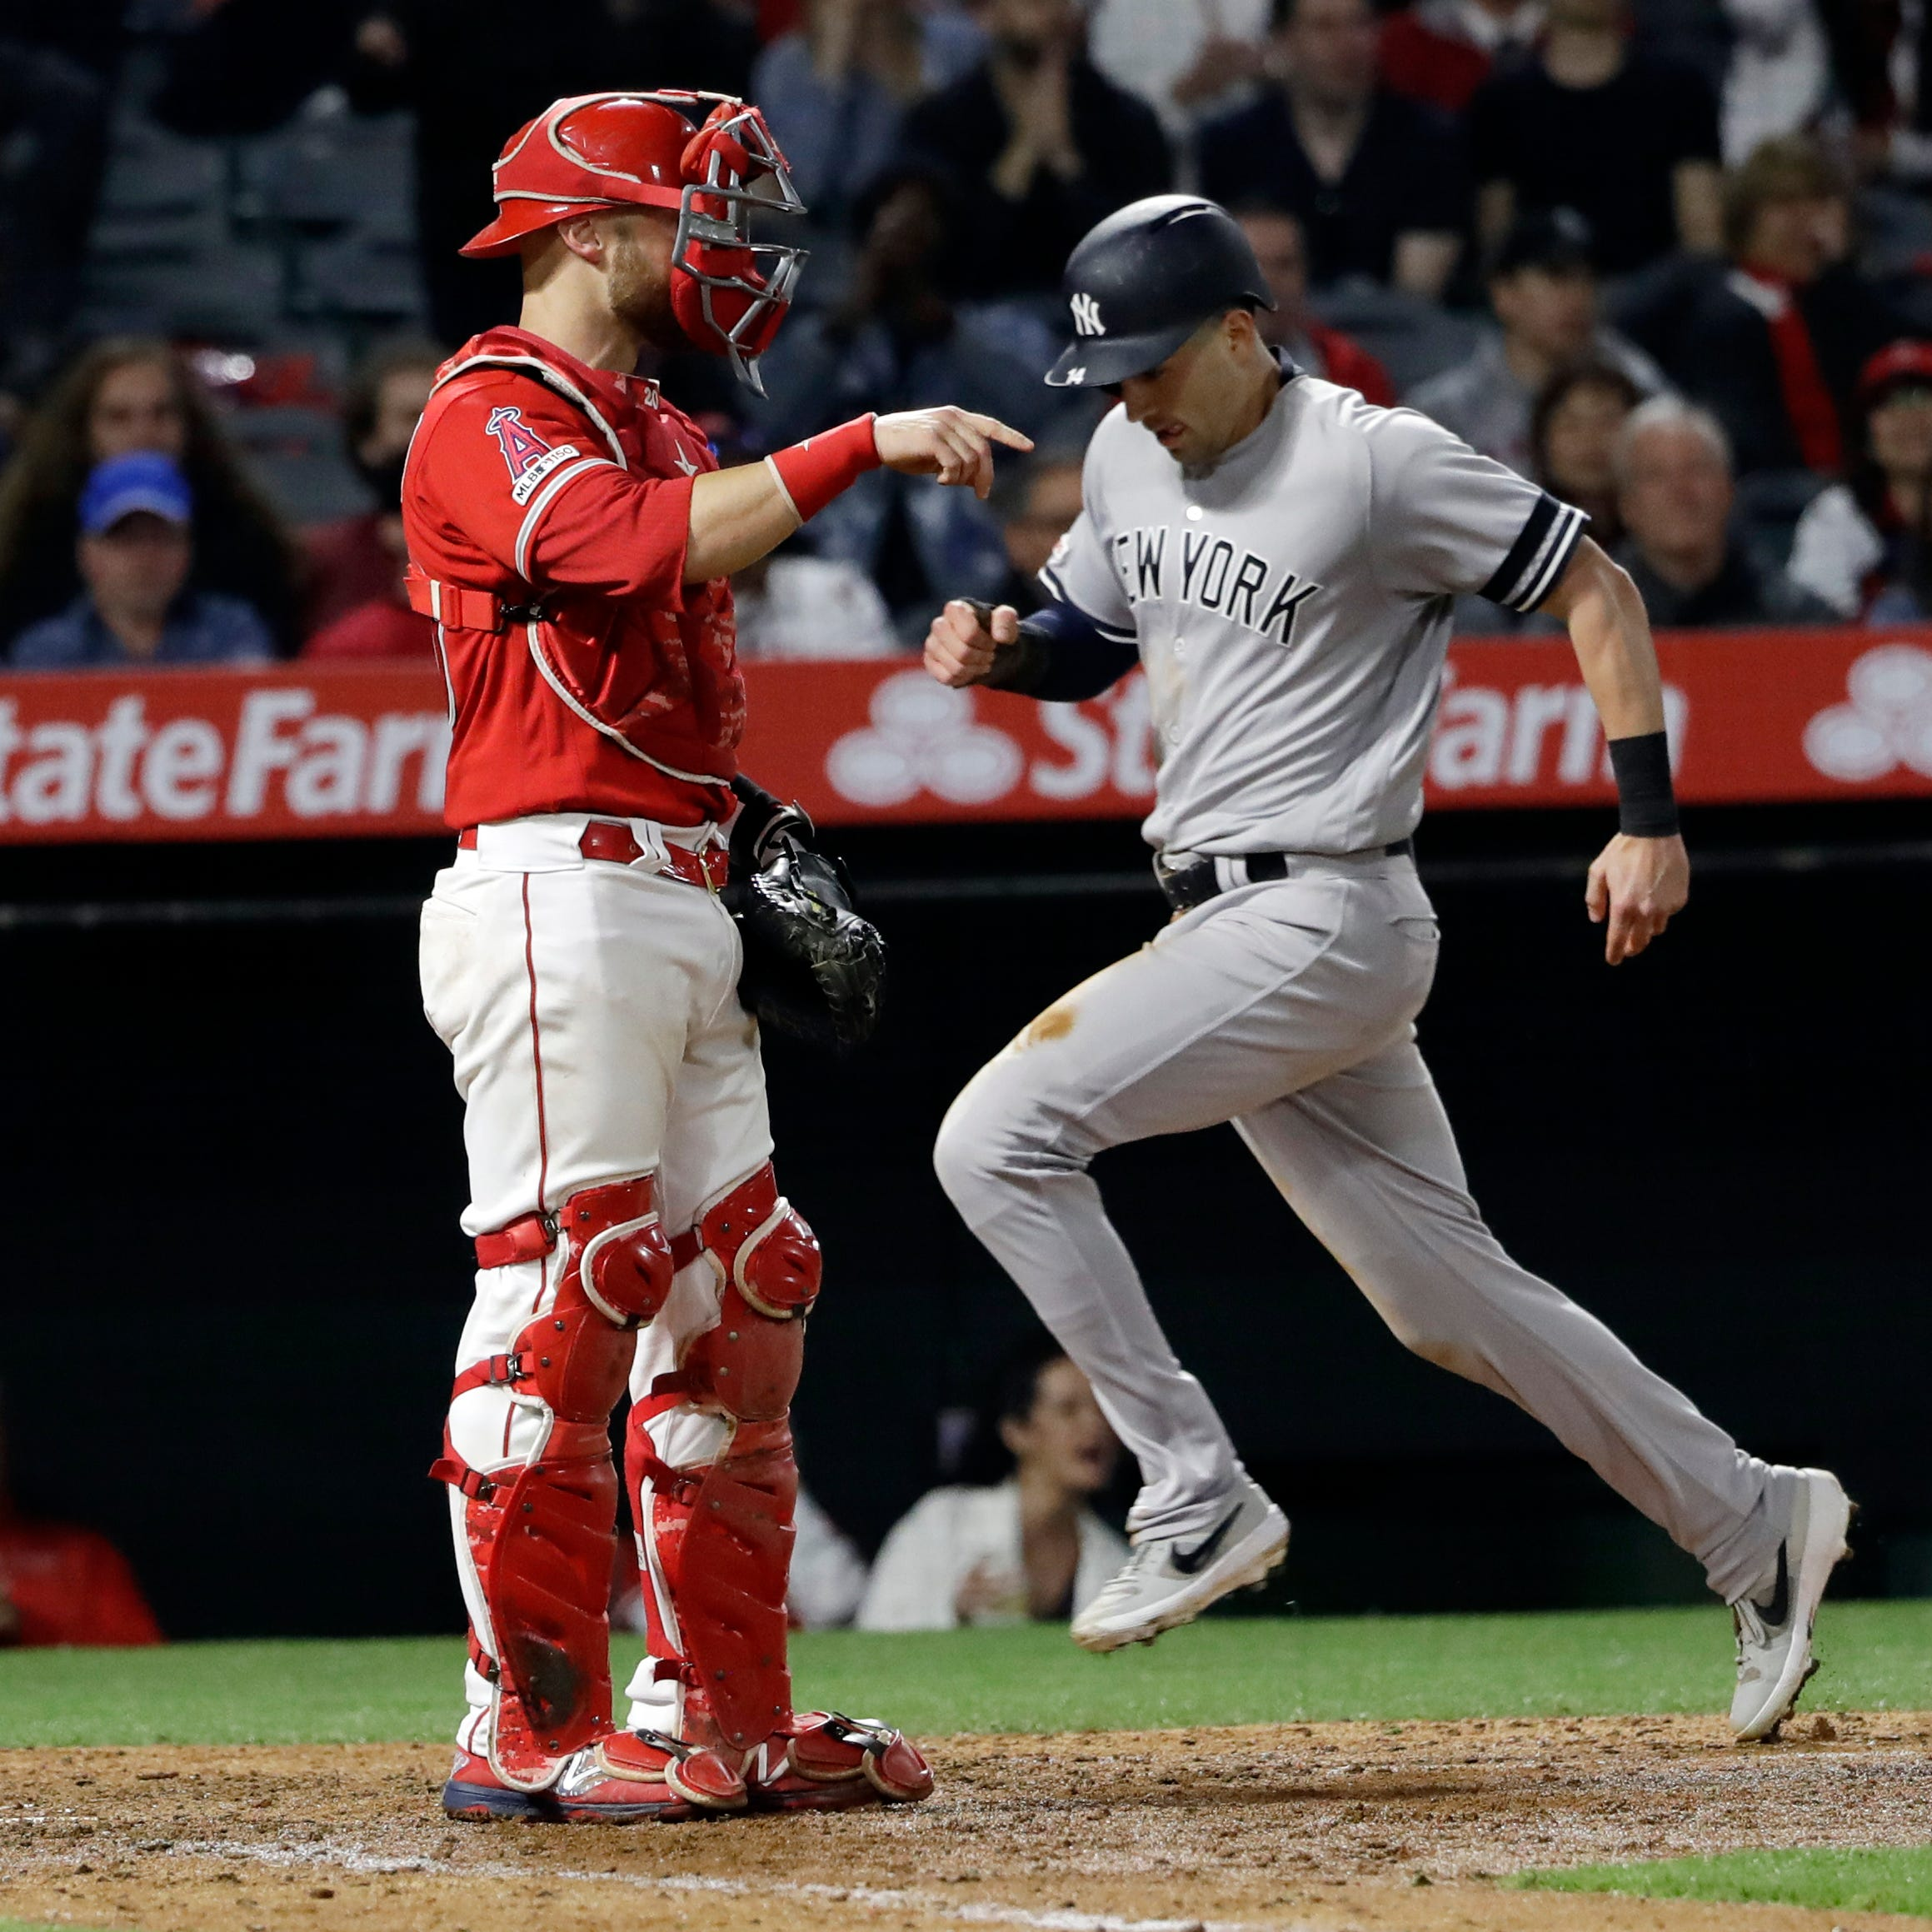 Yankees rally back from five runs down at Anaheim to win sixth straight